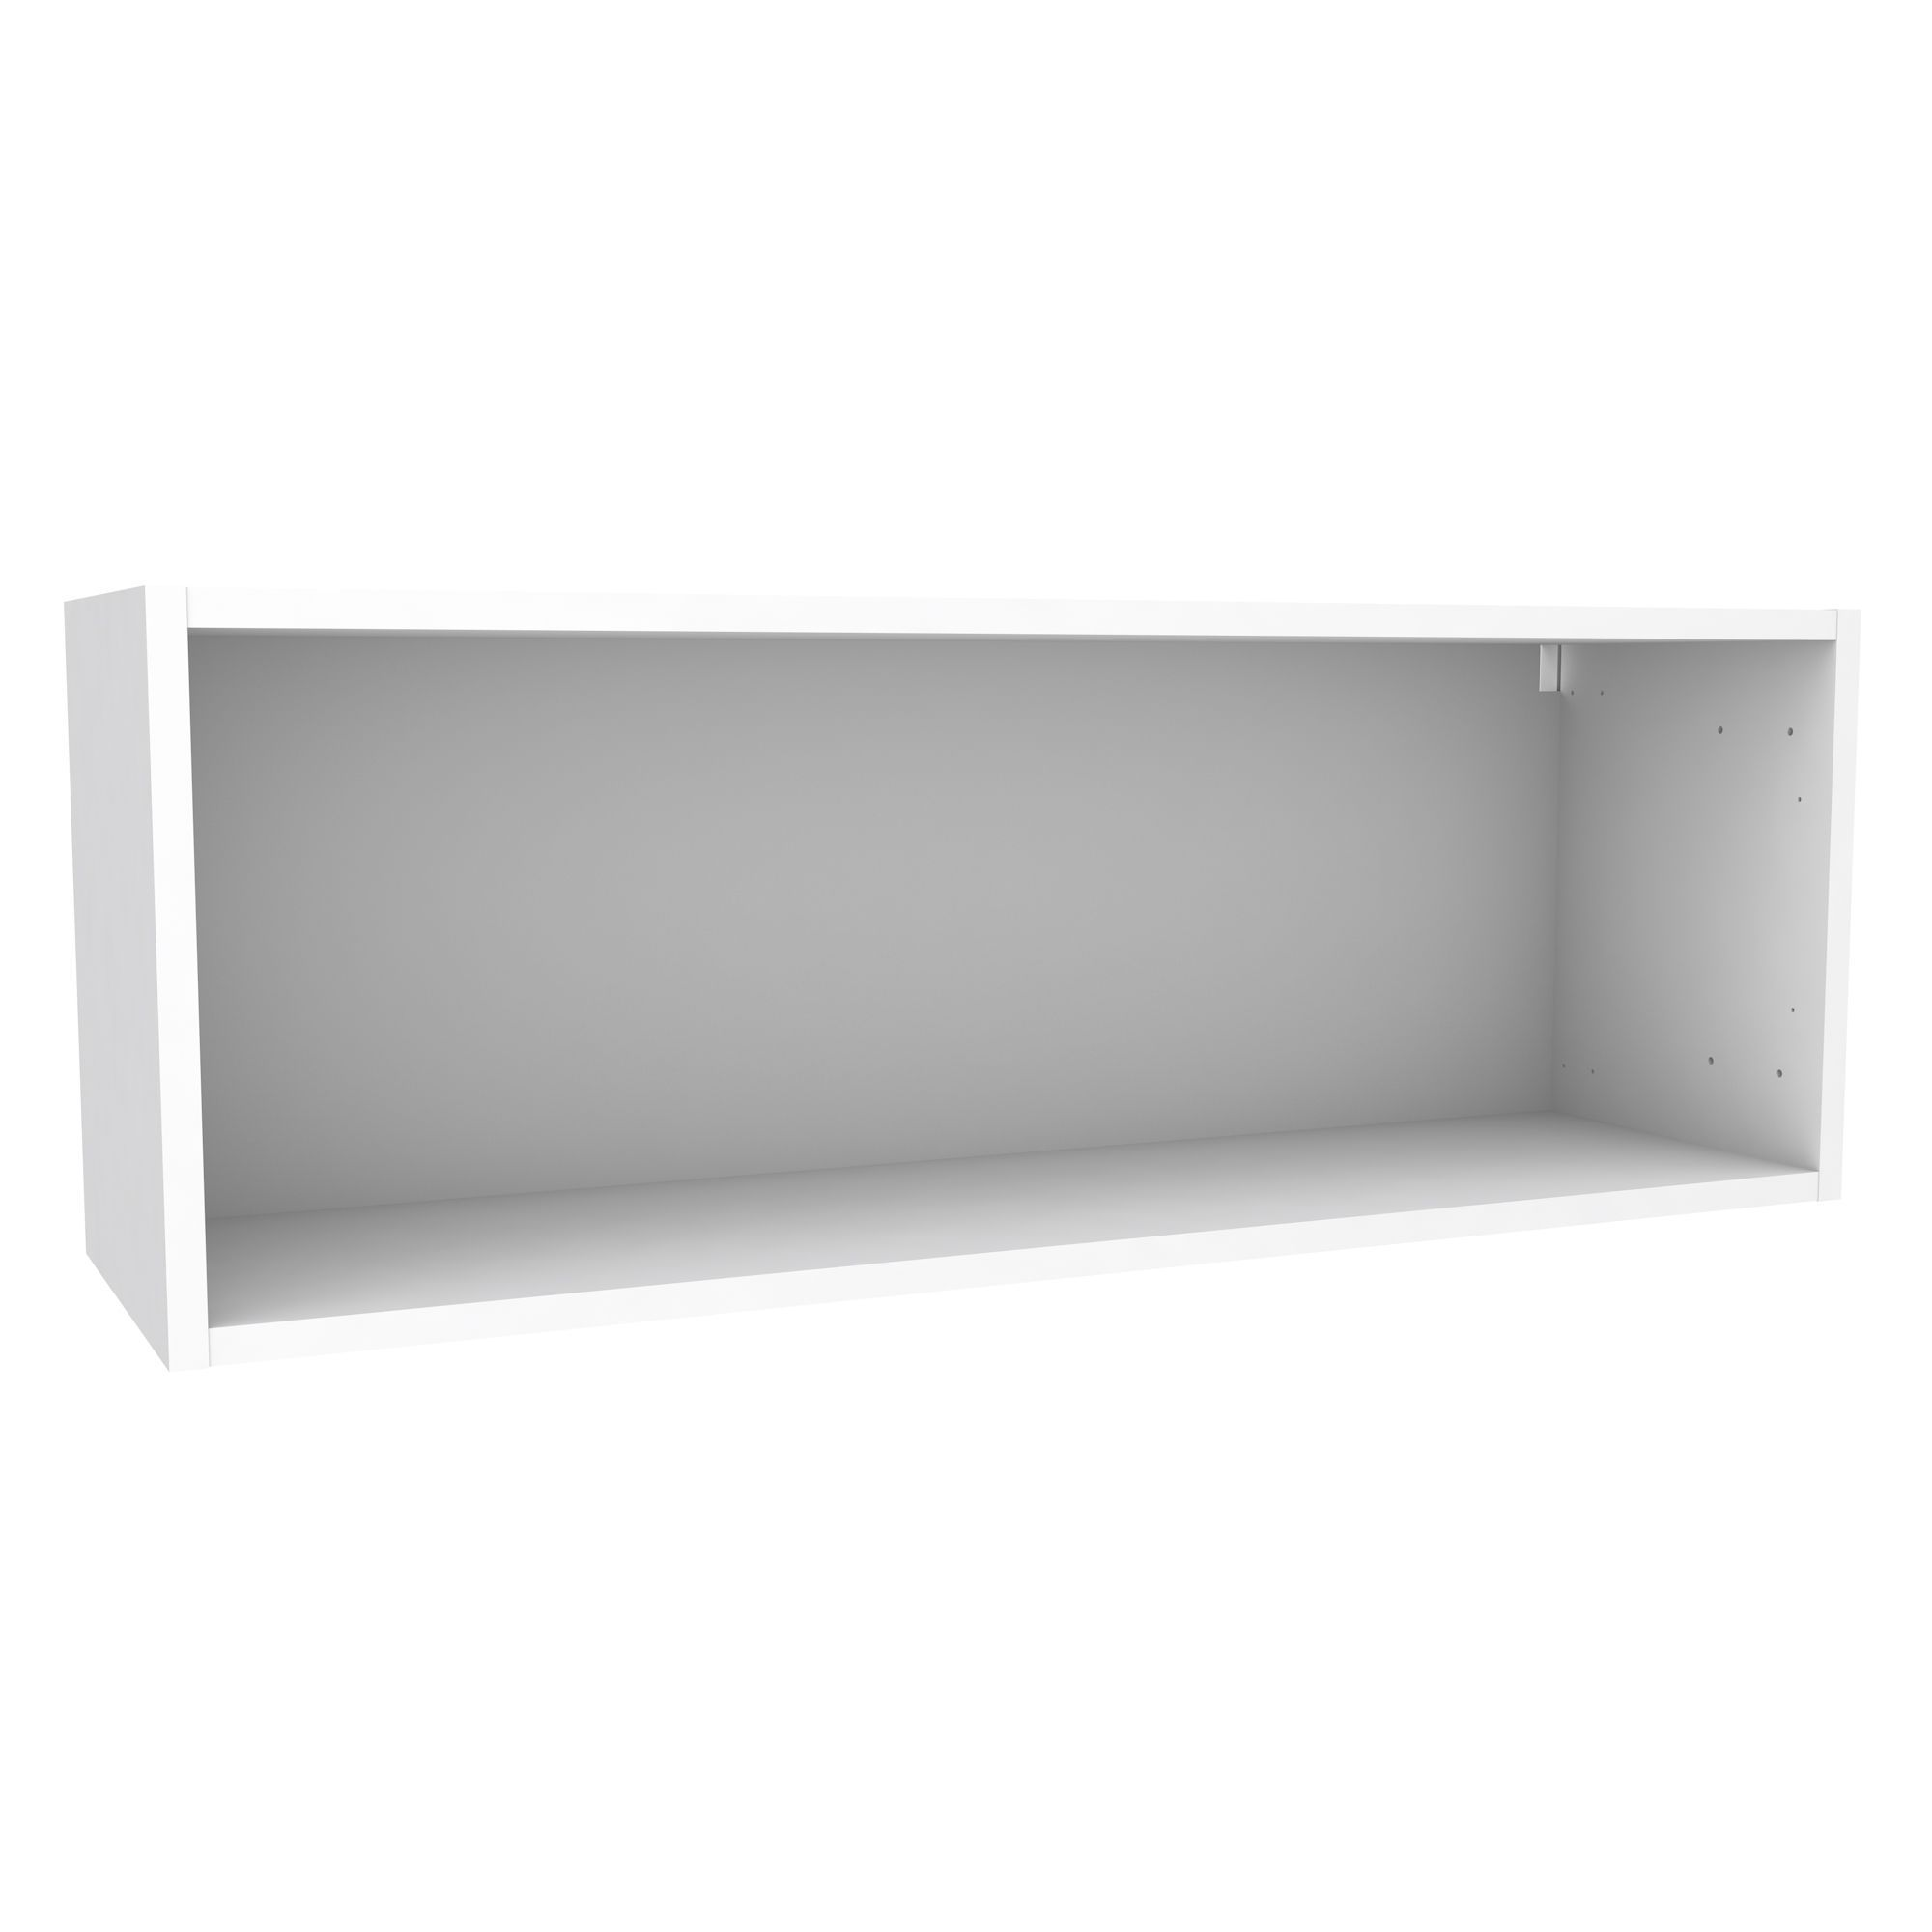 Flat pack bathroom cabinets - Cooke Lewis White Bridging Wall Cabinet W 1000mm